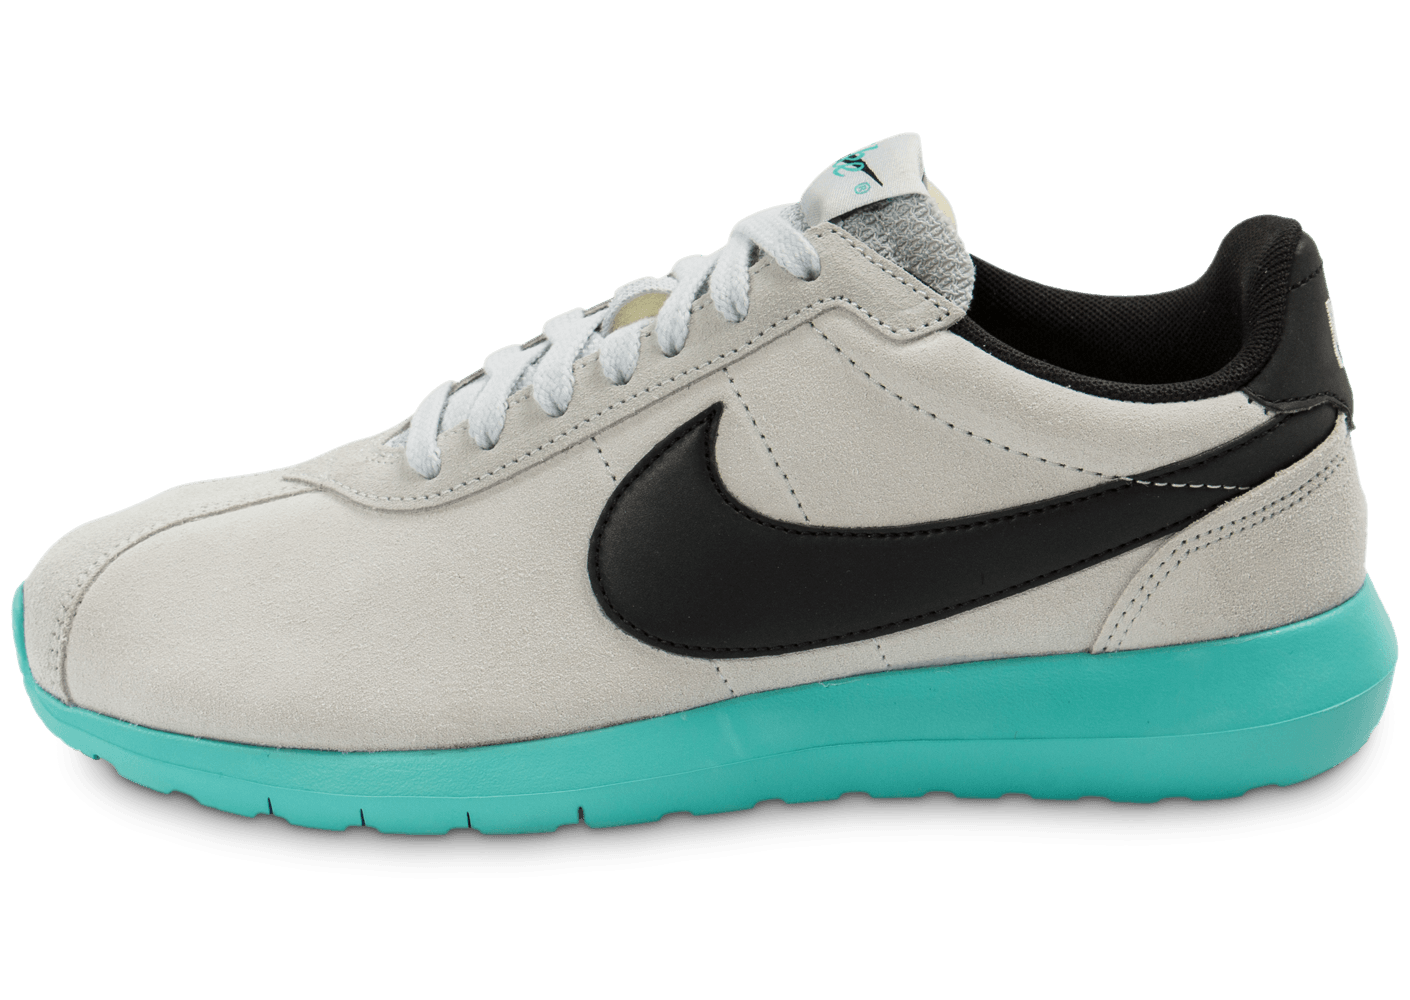 poele a bois supra tomera - Chaussures Nike Roshe Run LD 1000 : toutes les baskets Nike ...